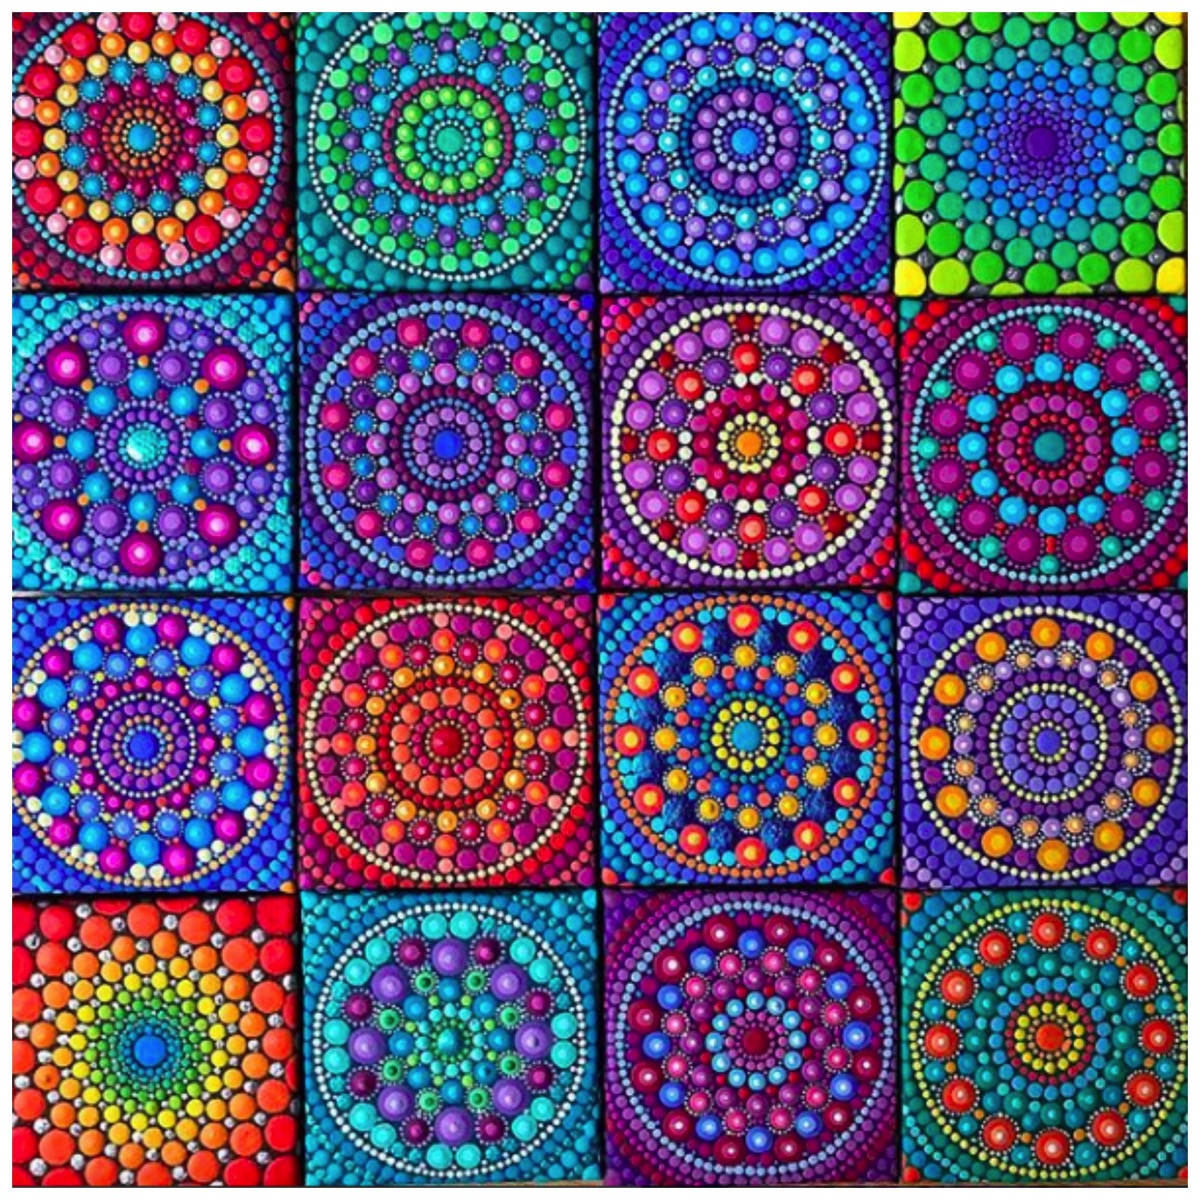 Colorful mandala collage boho style